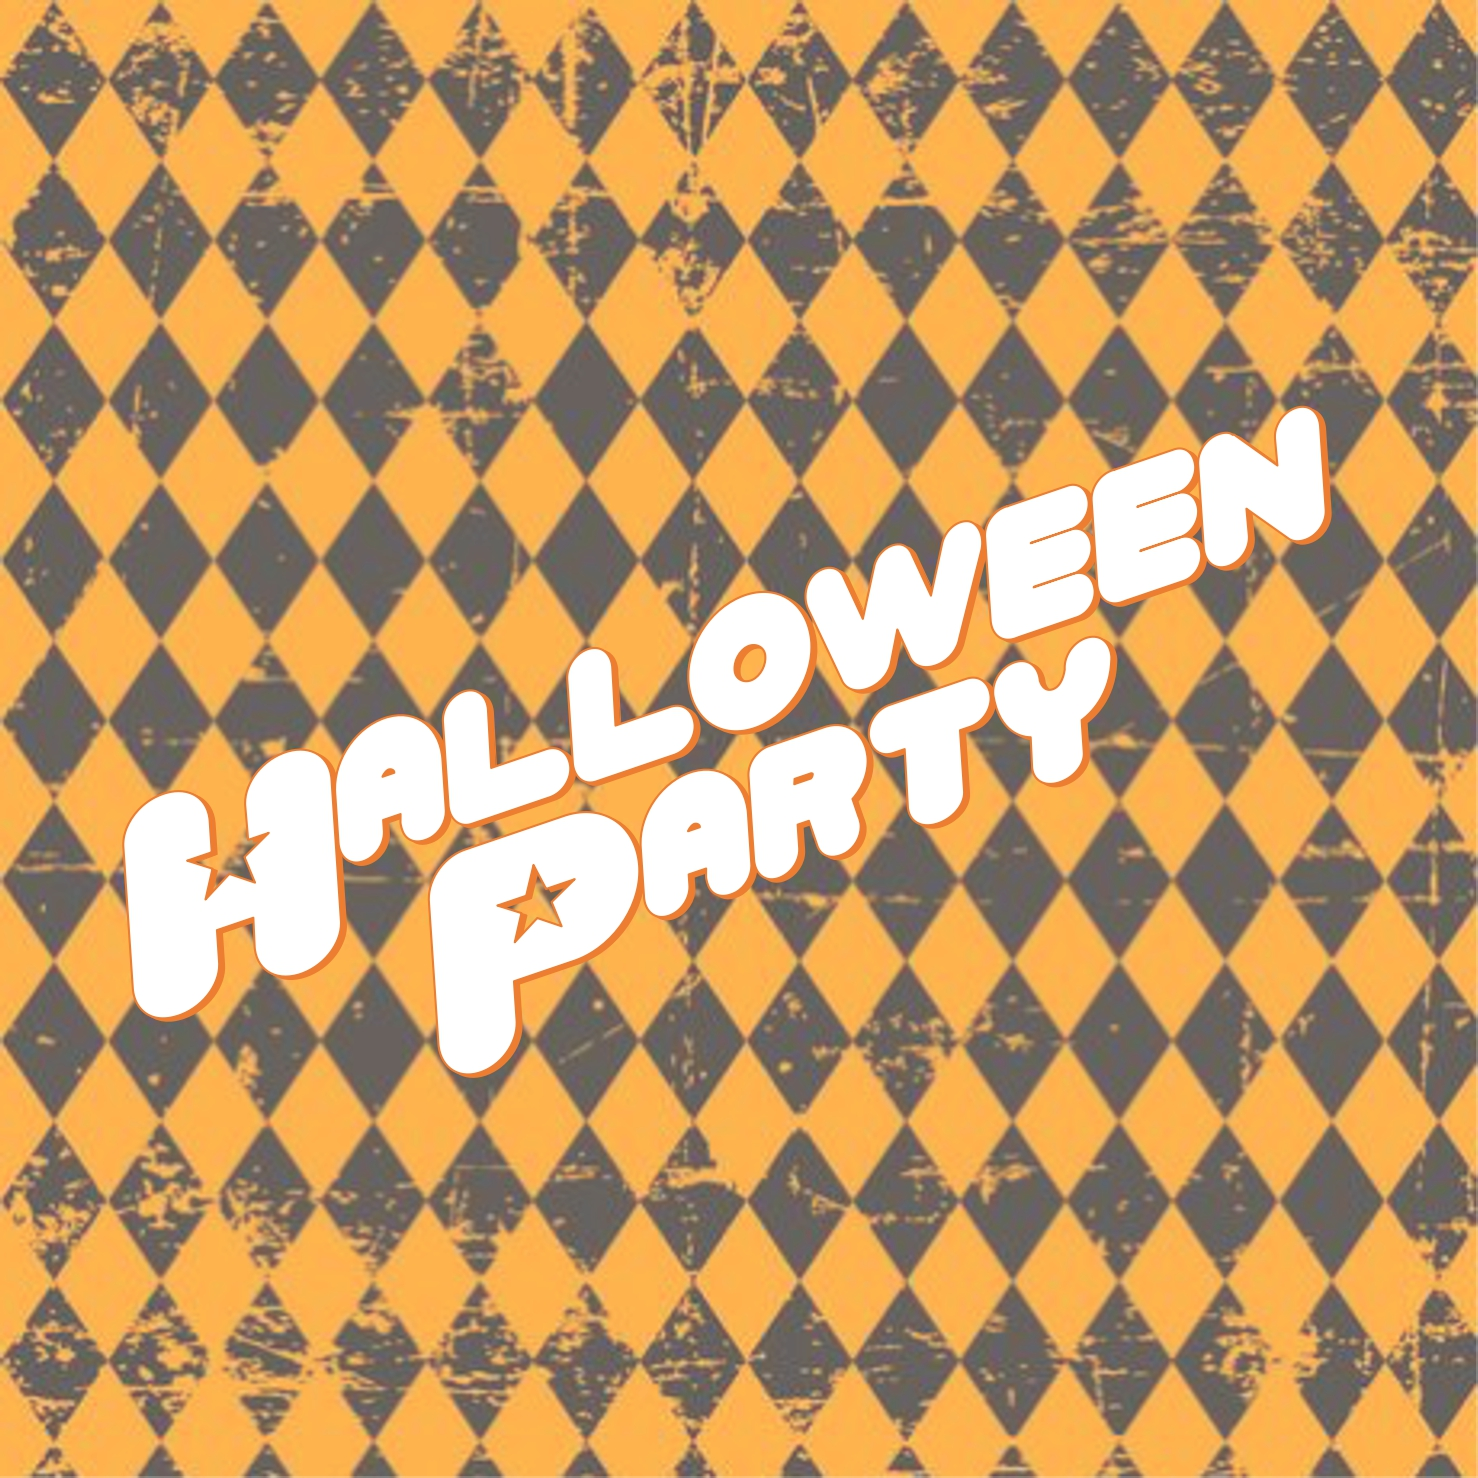 【HALLOWEEN PARTY】